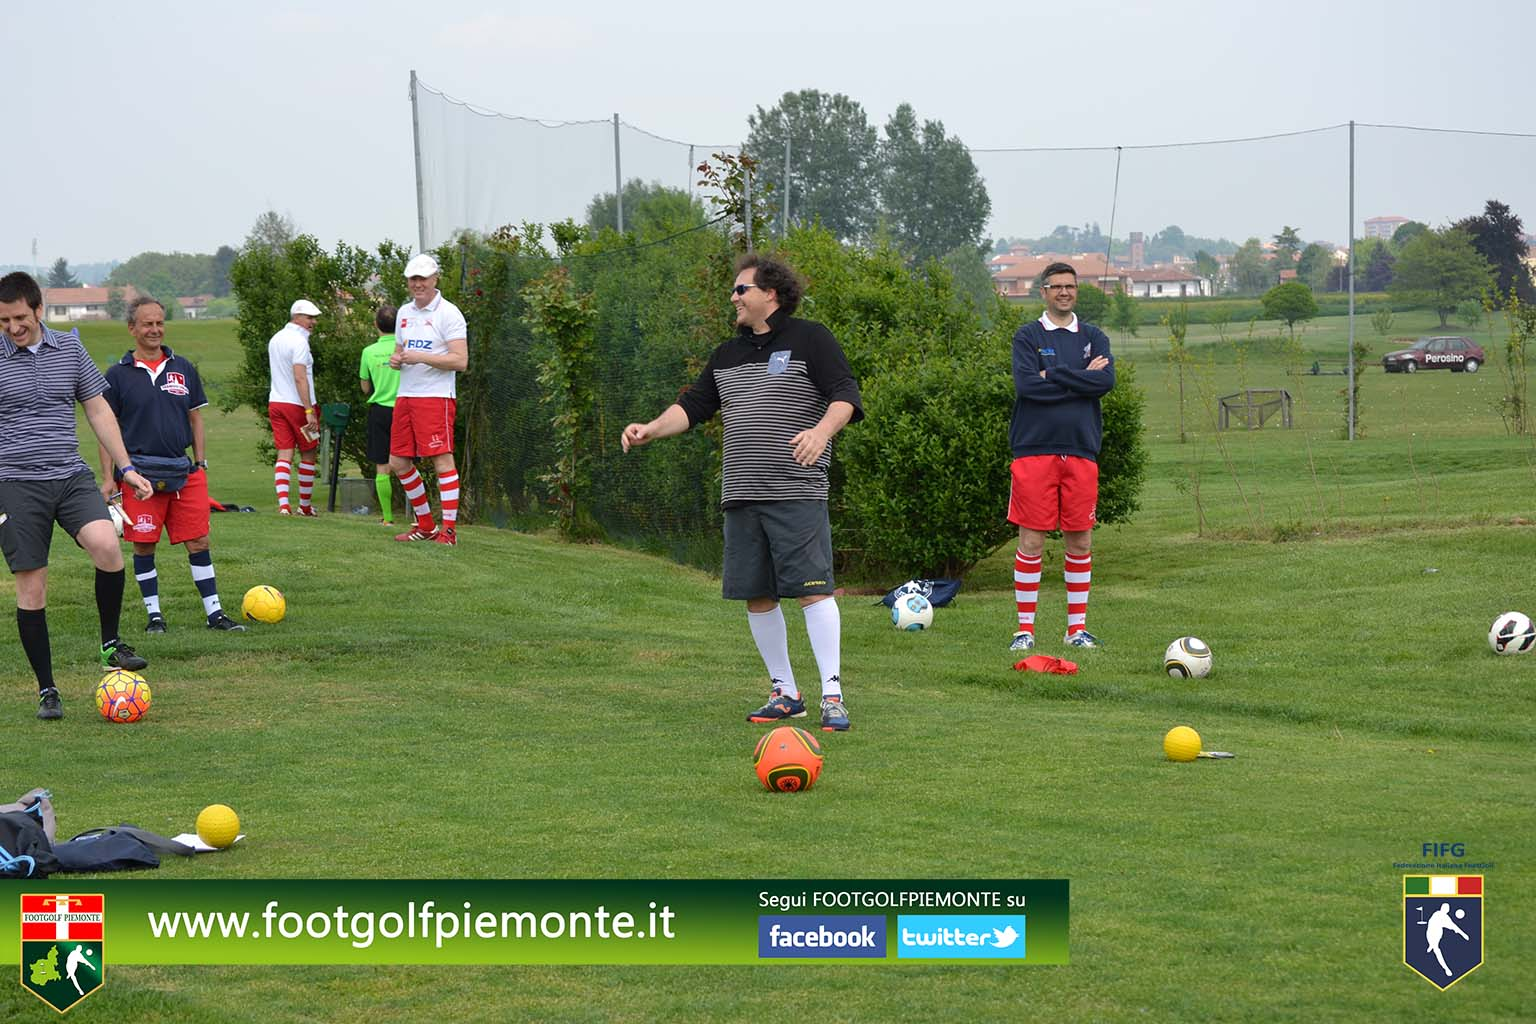 FOTO 9 Regions' Cup Footgolf Piemonte 2016 Golf Città di Asti (At) 30apr16-6